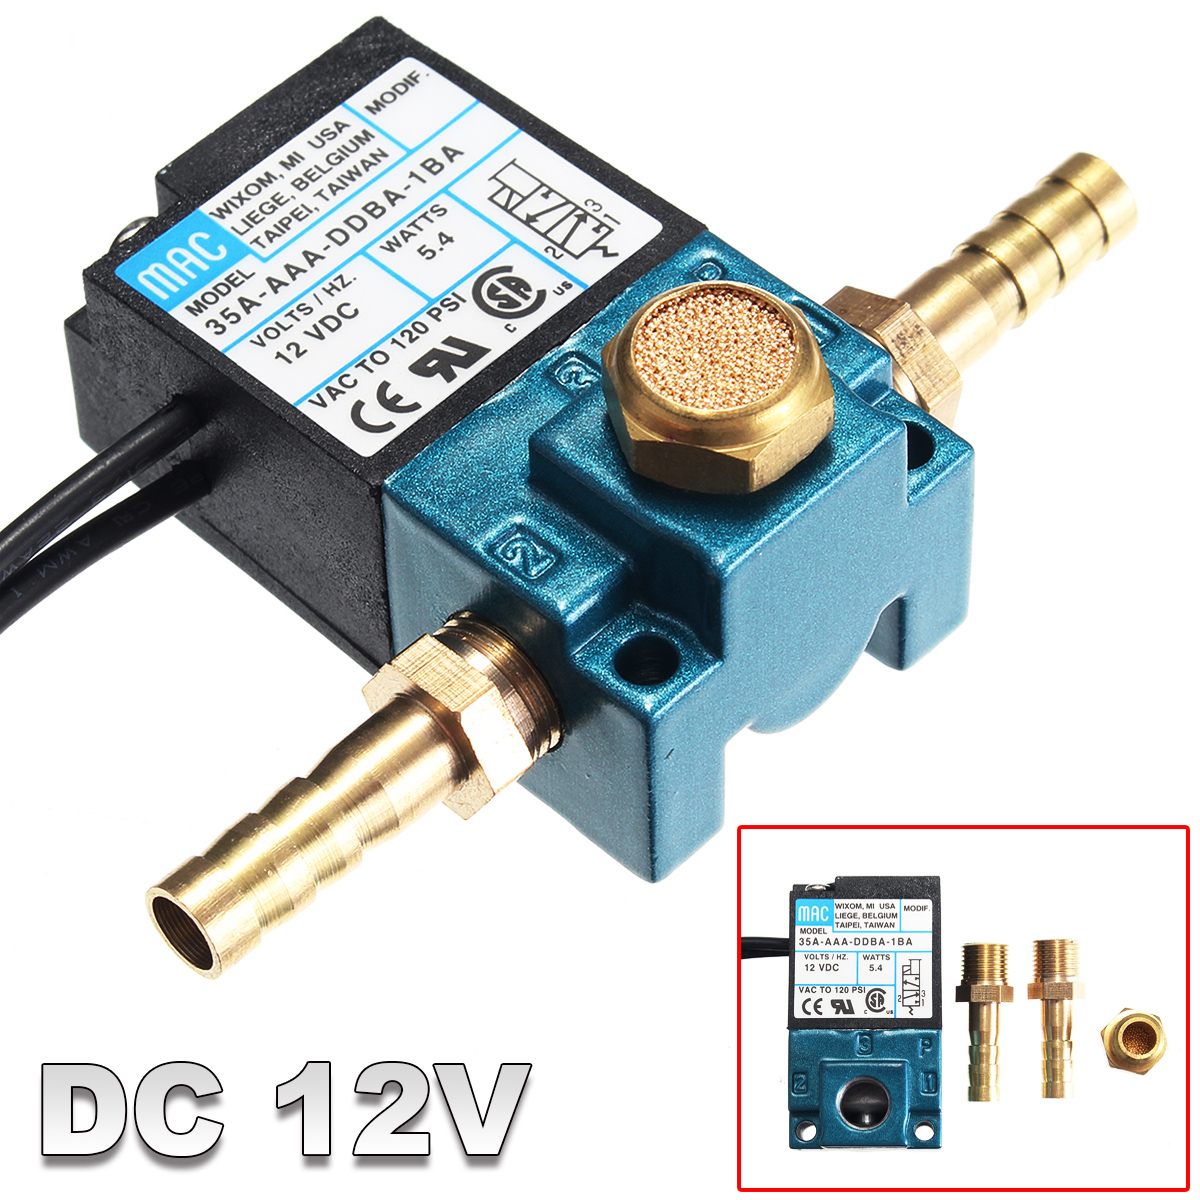 hight resolution of 3 port dc 12v 5 4 w pressureswitche electronic boost control solenoid valve for ecu pwm 35a aaa ddba 1ba with brass fittings walmart com